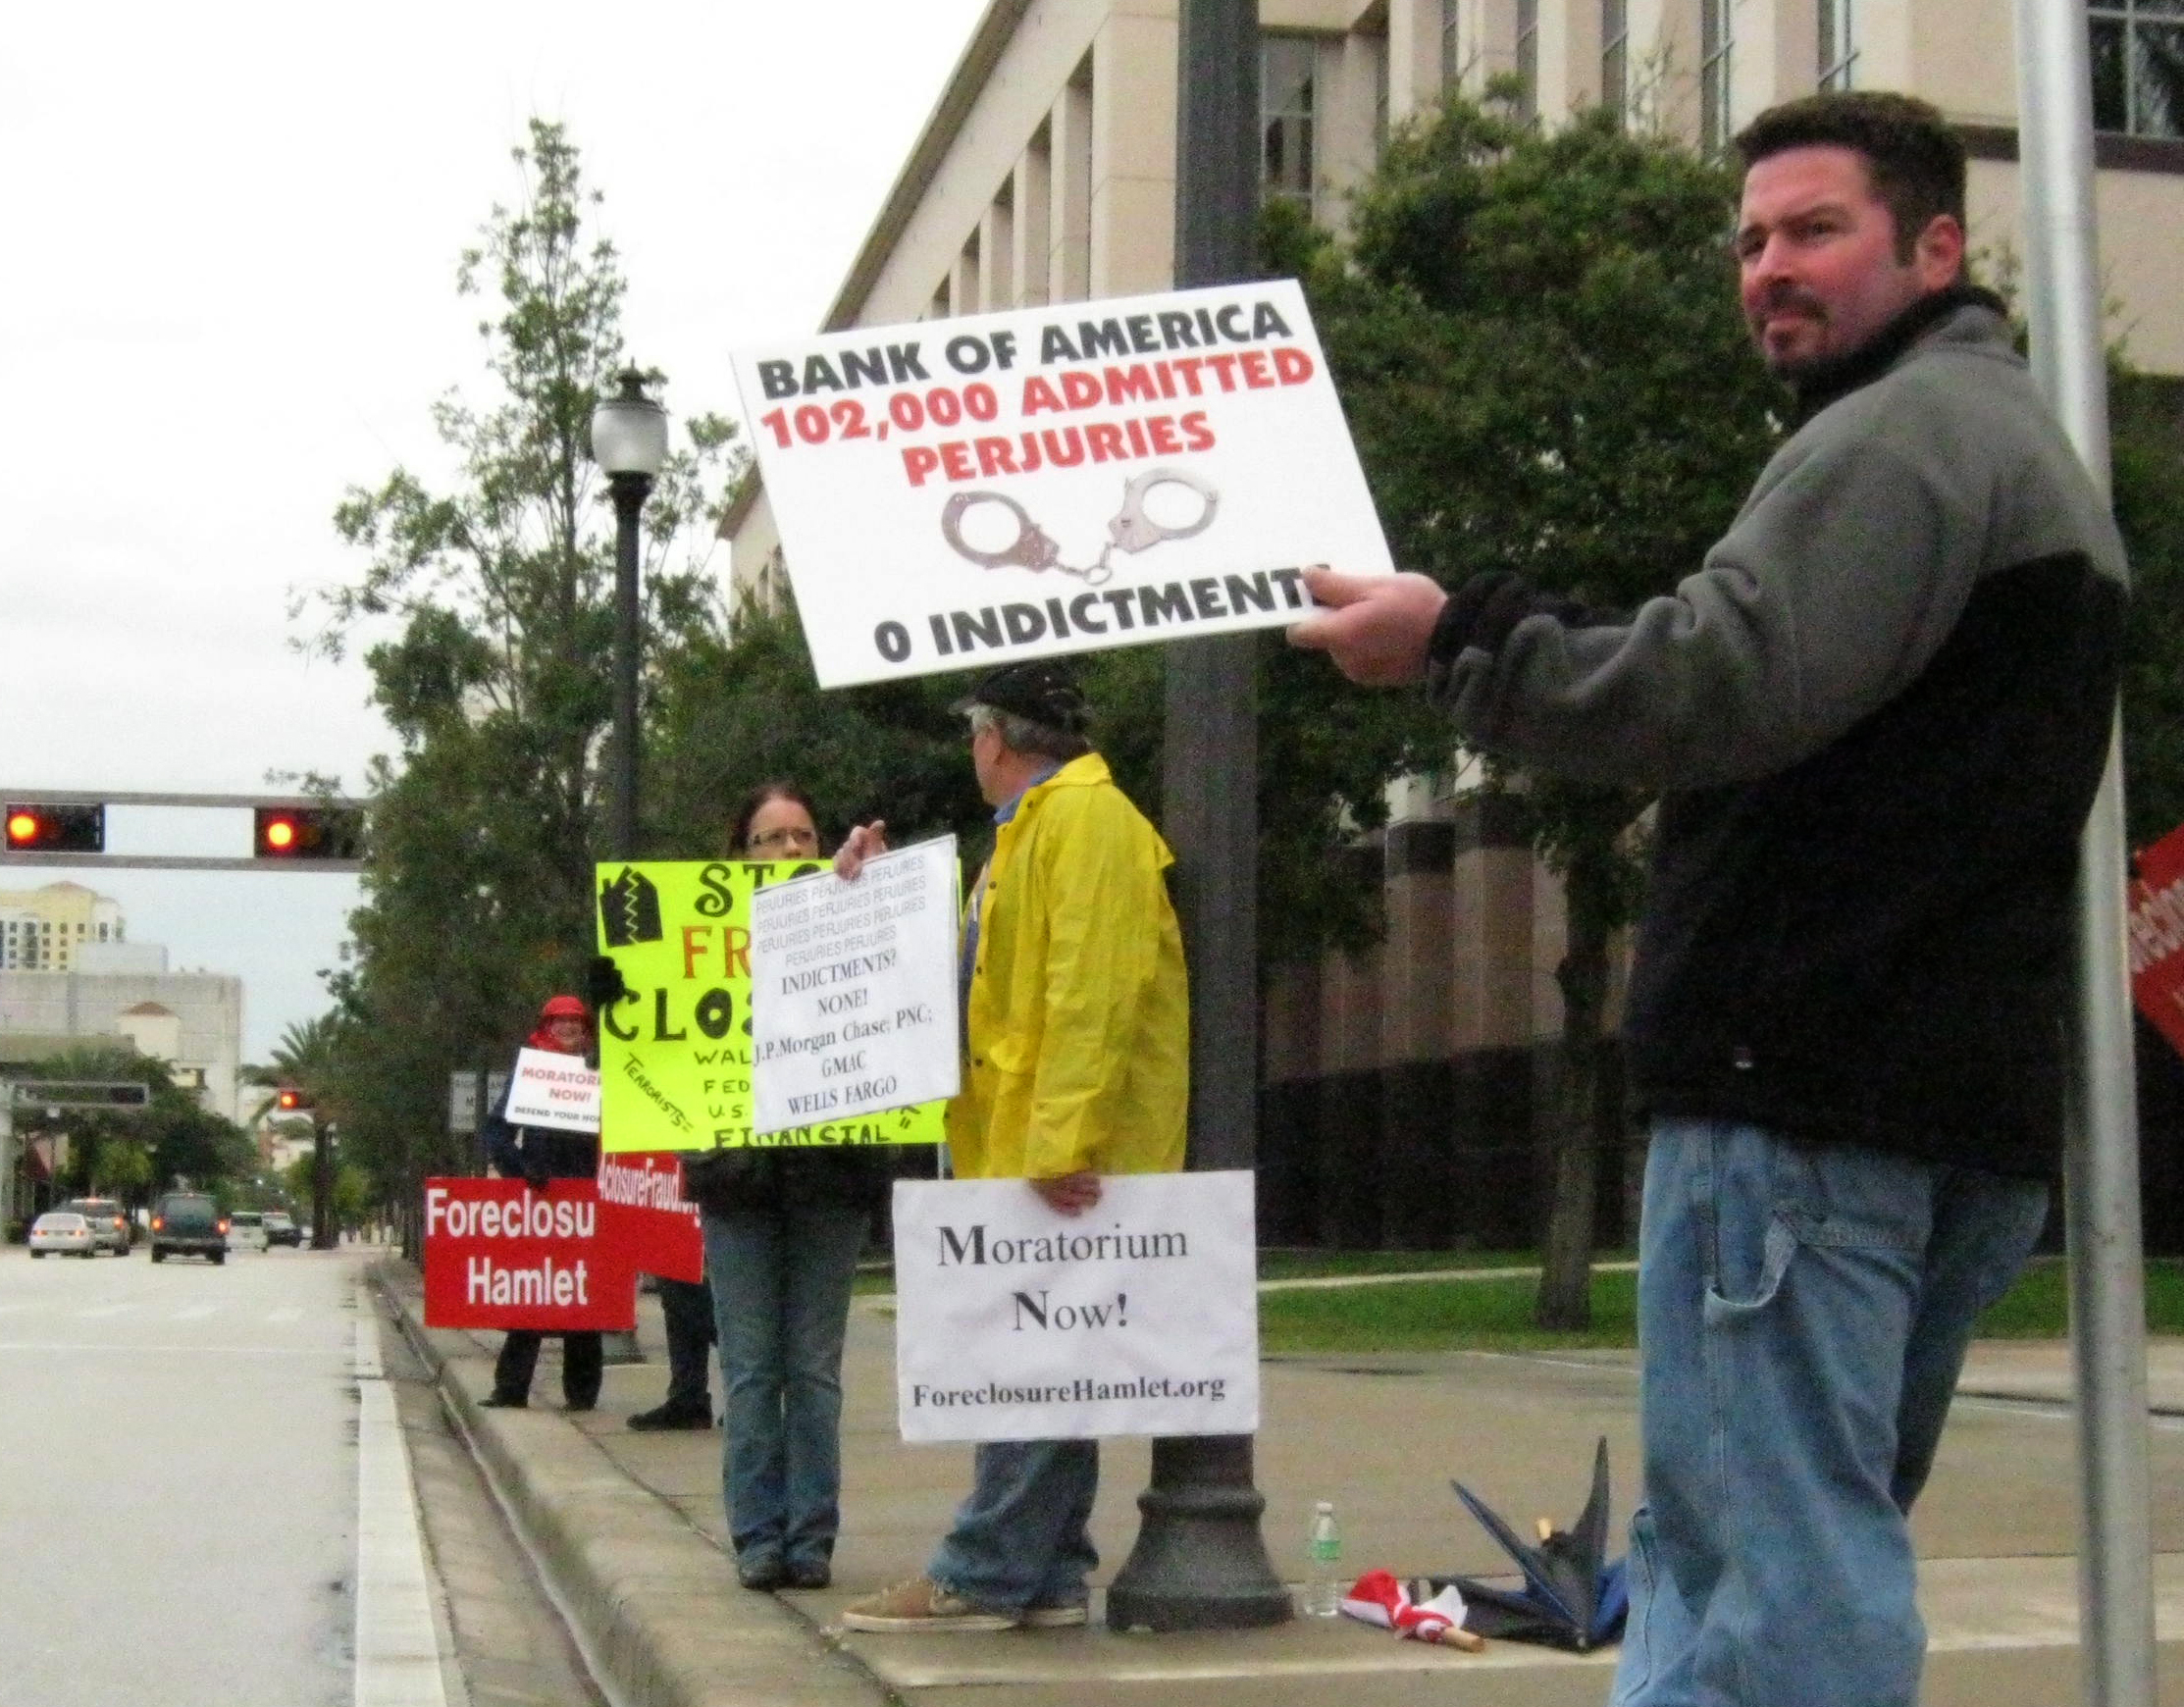 West Palm Beach Foreclosure Rally